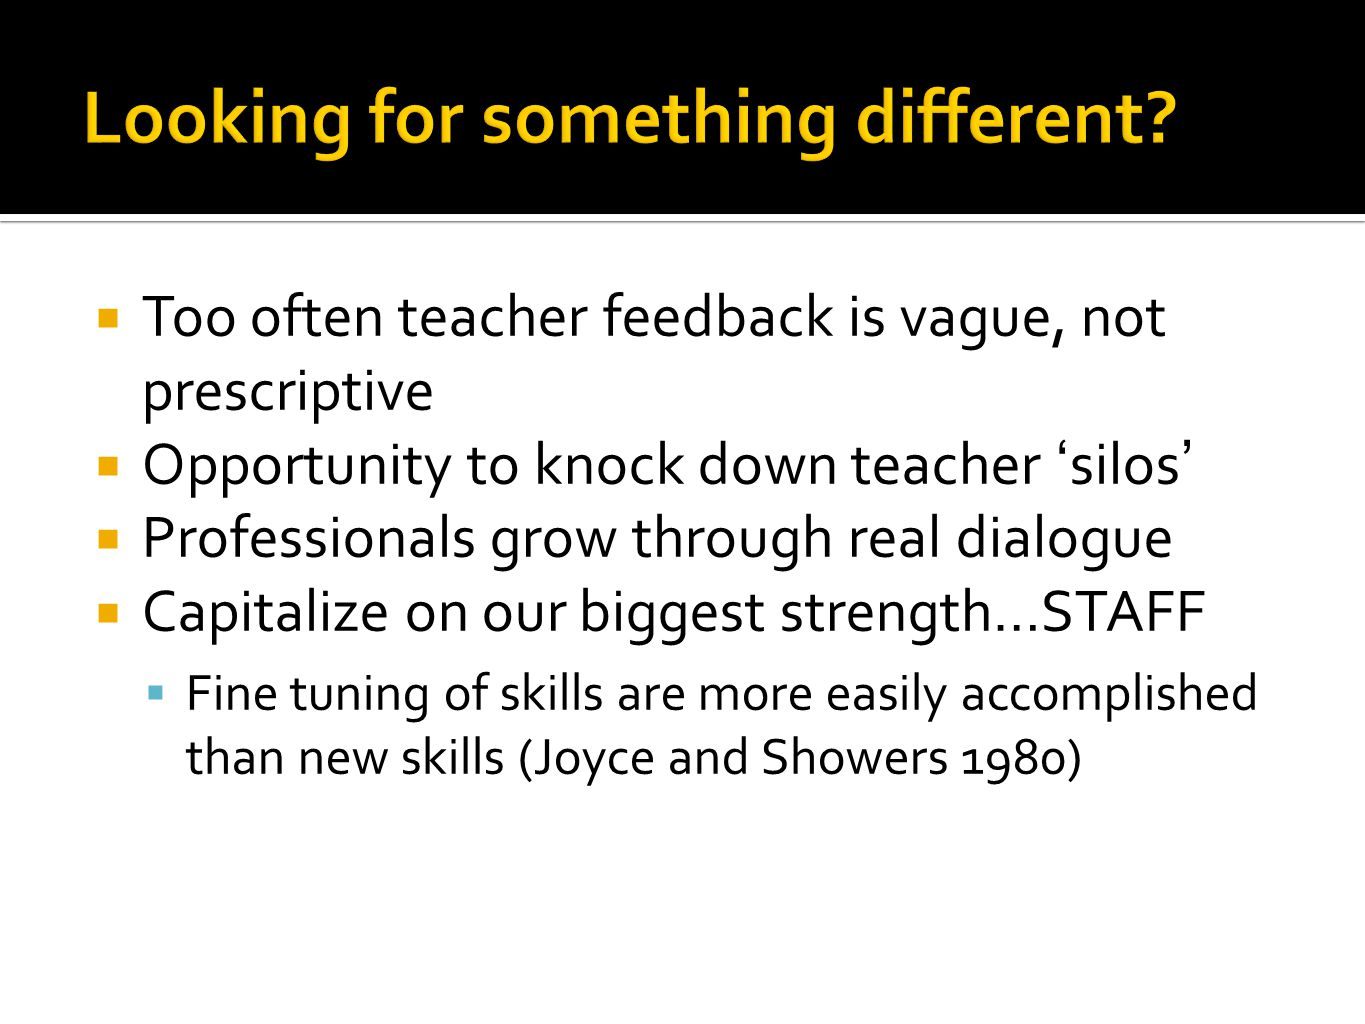  Too often teacher feedback is vague, not prescriptive  Opportunity to knock down teacher 'silos'  Professionals grow through real dialogue  Capitalize on our biggest strength…STAFF  Fine tuning of skills are more easily accomplished than new skills (Joyce and Showers 1980)